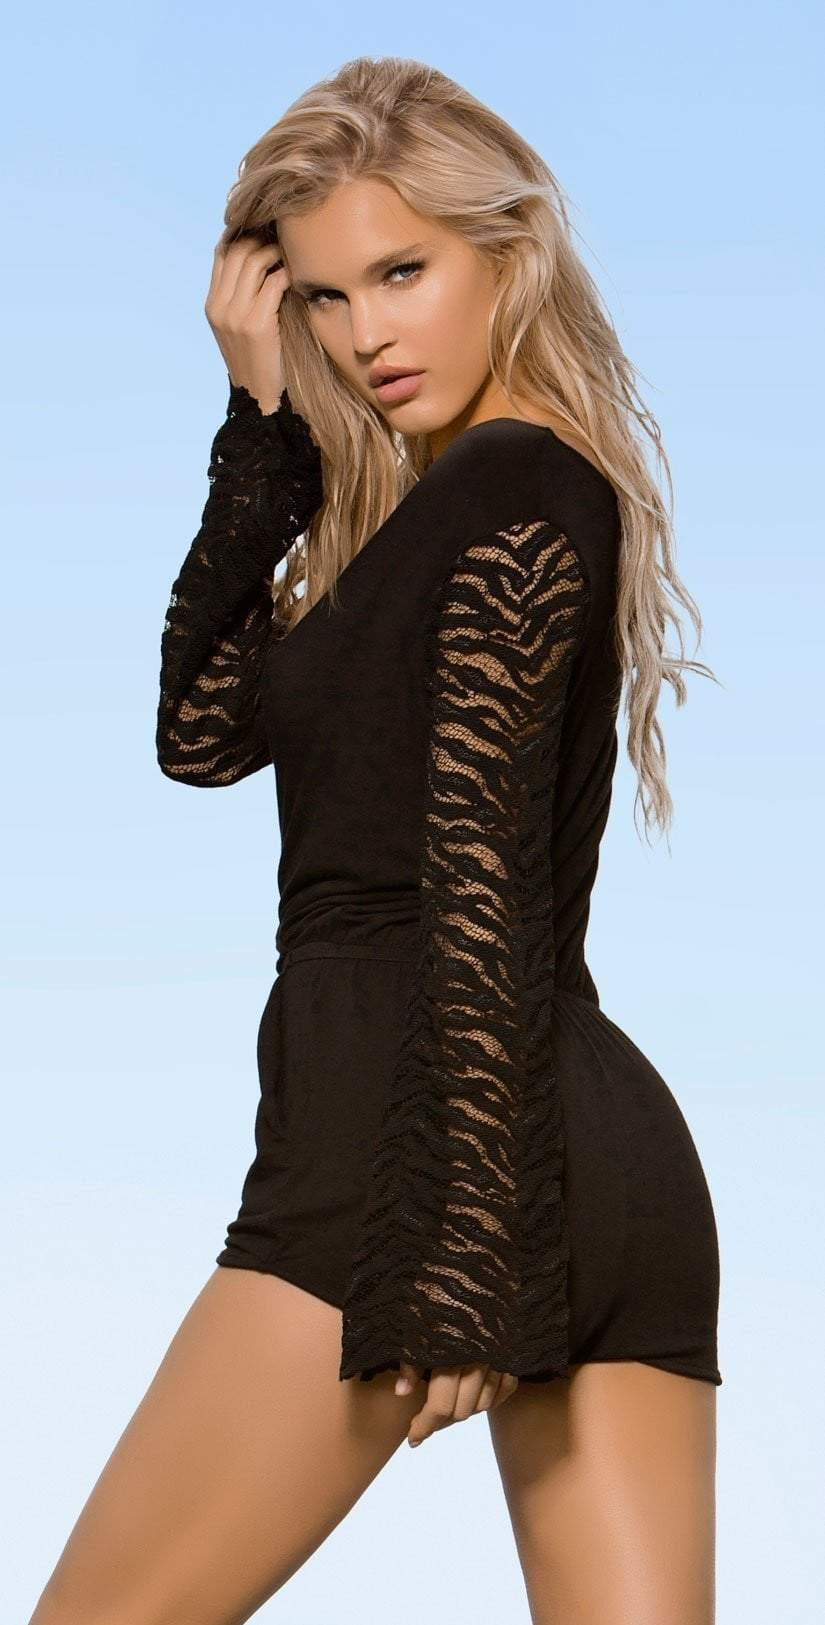 Lady Lux Pillow Talk Black Romper LL219R side view